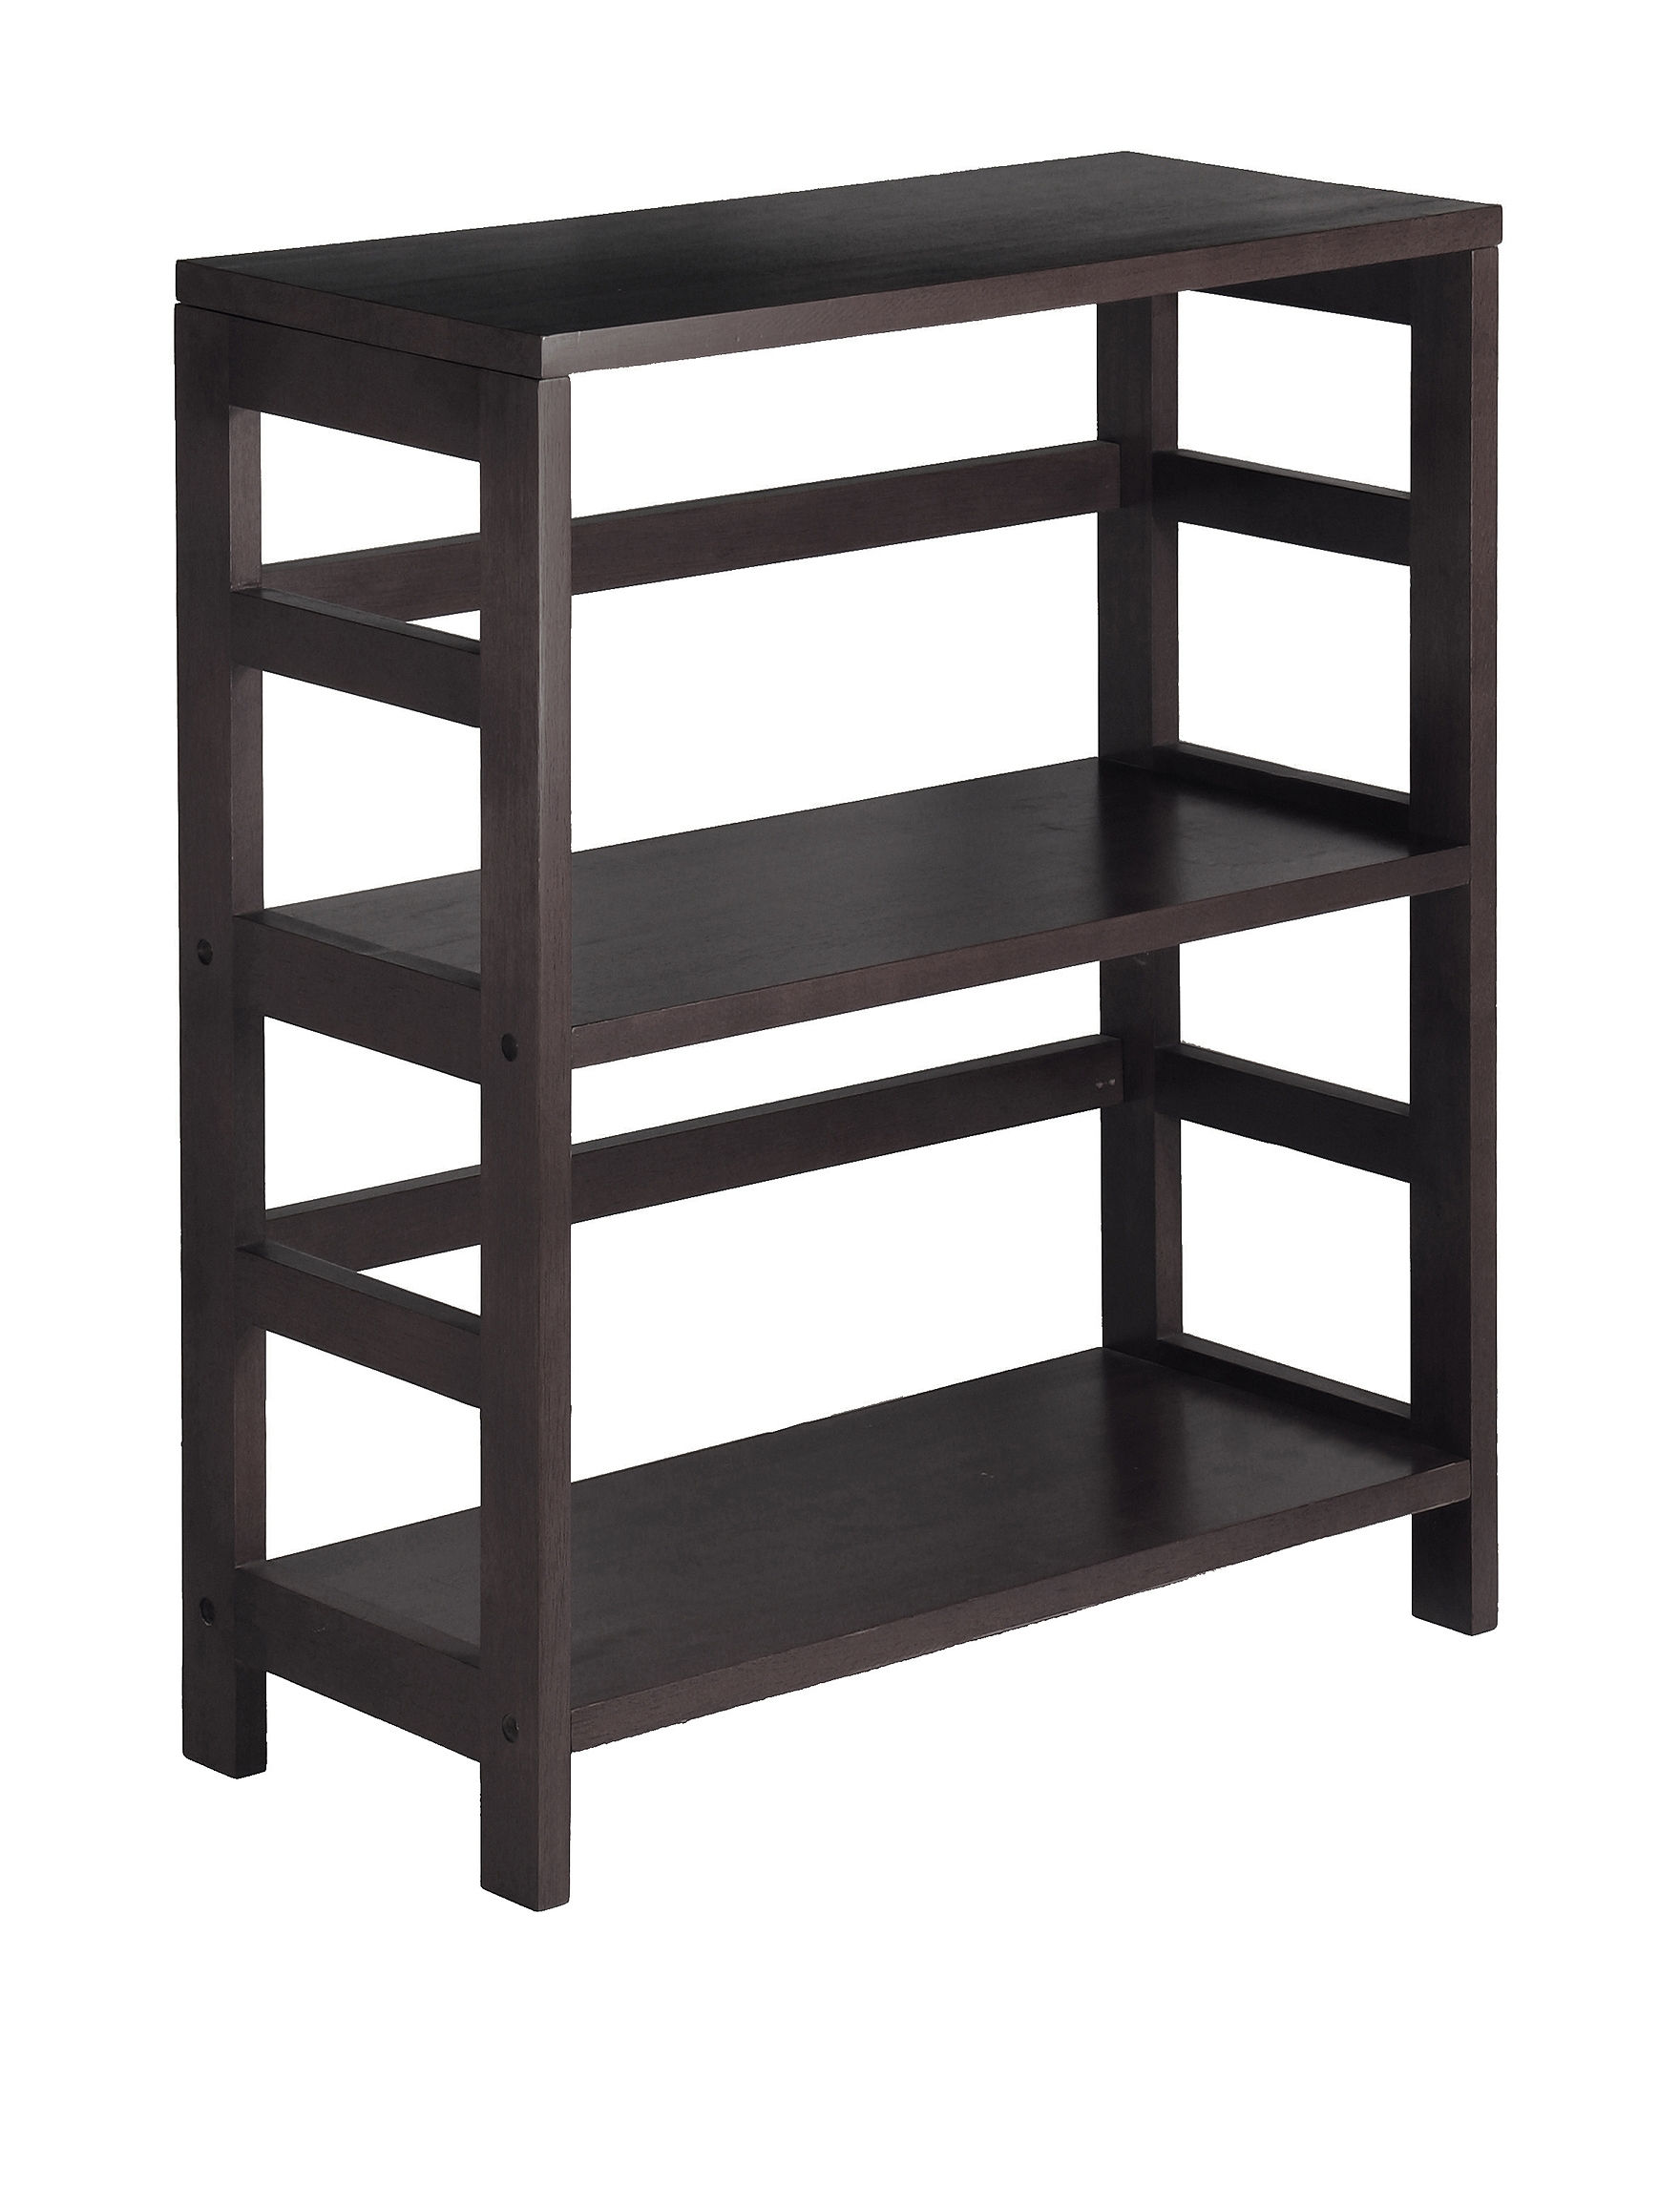 Winsome Brown Storage Shelves Living Room Furniture